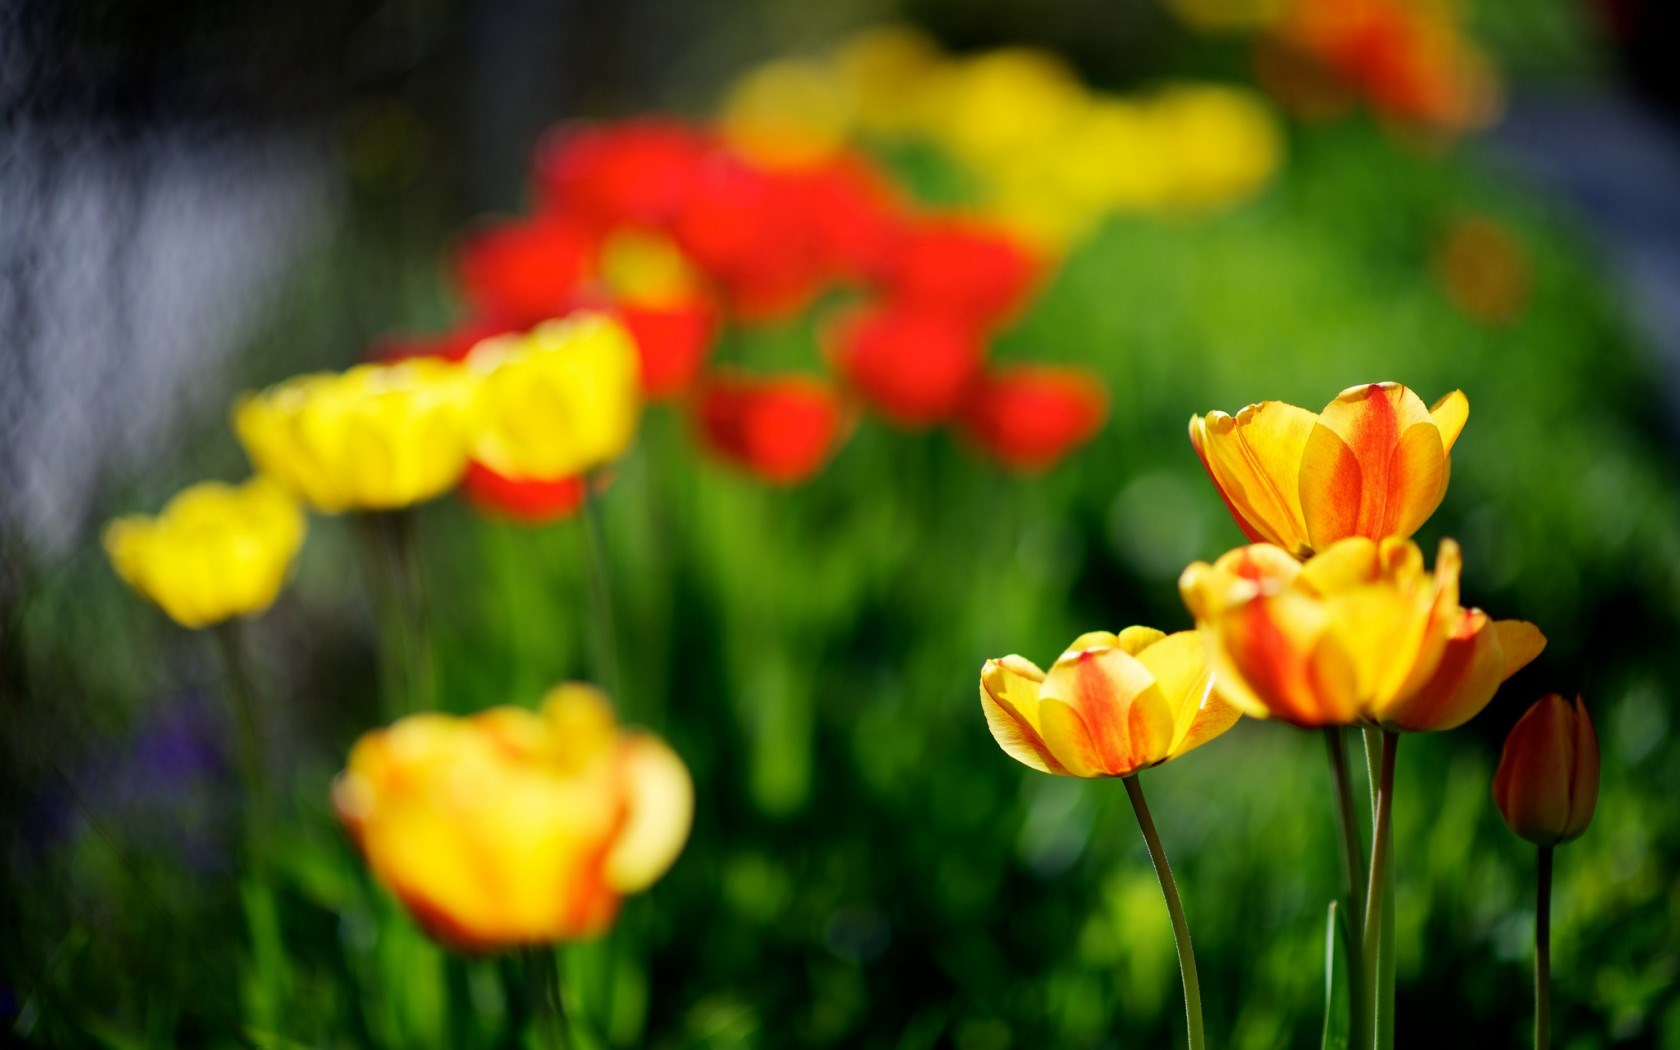 tulips yellow red spring nature